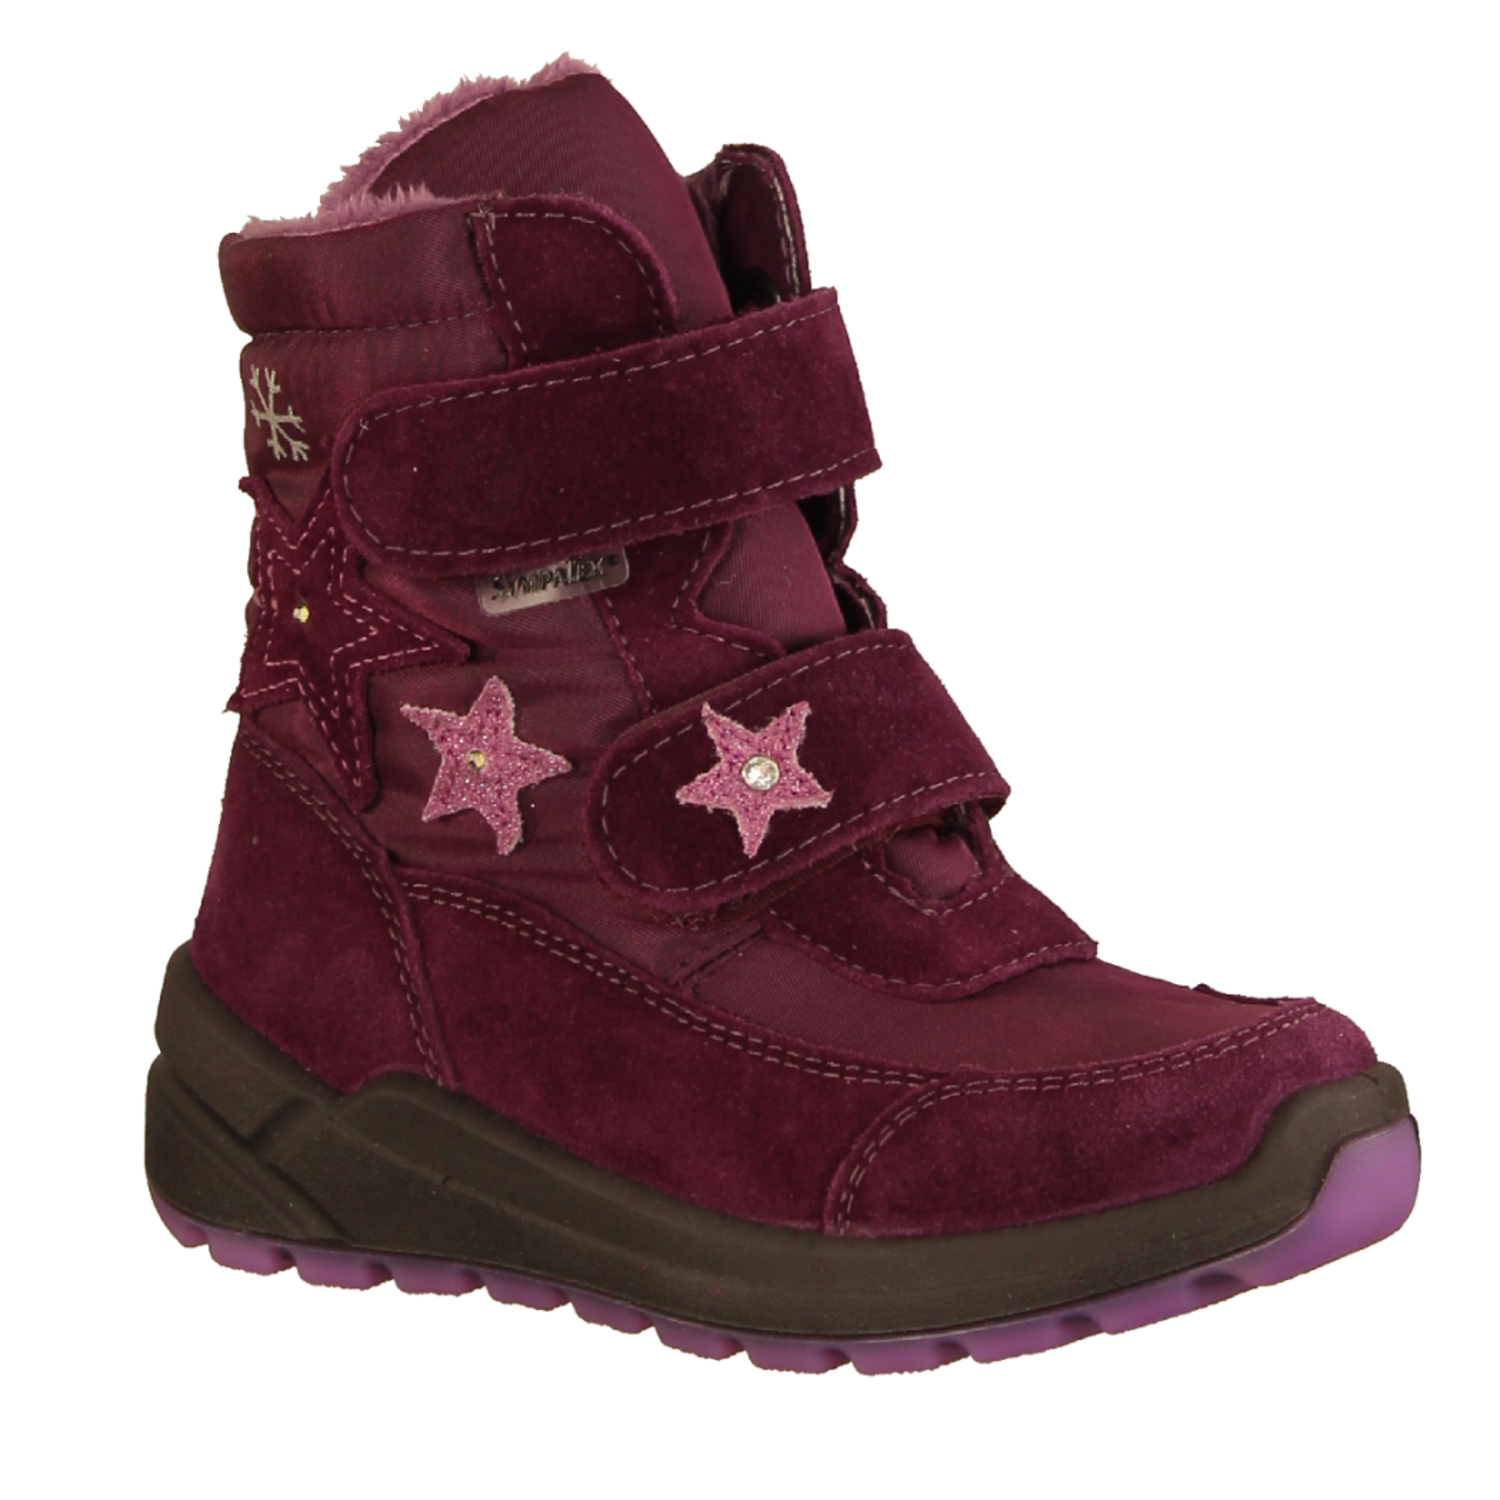 childrens boots d 228 umling 200021s 21 barolo leather